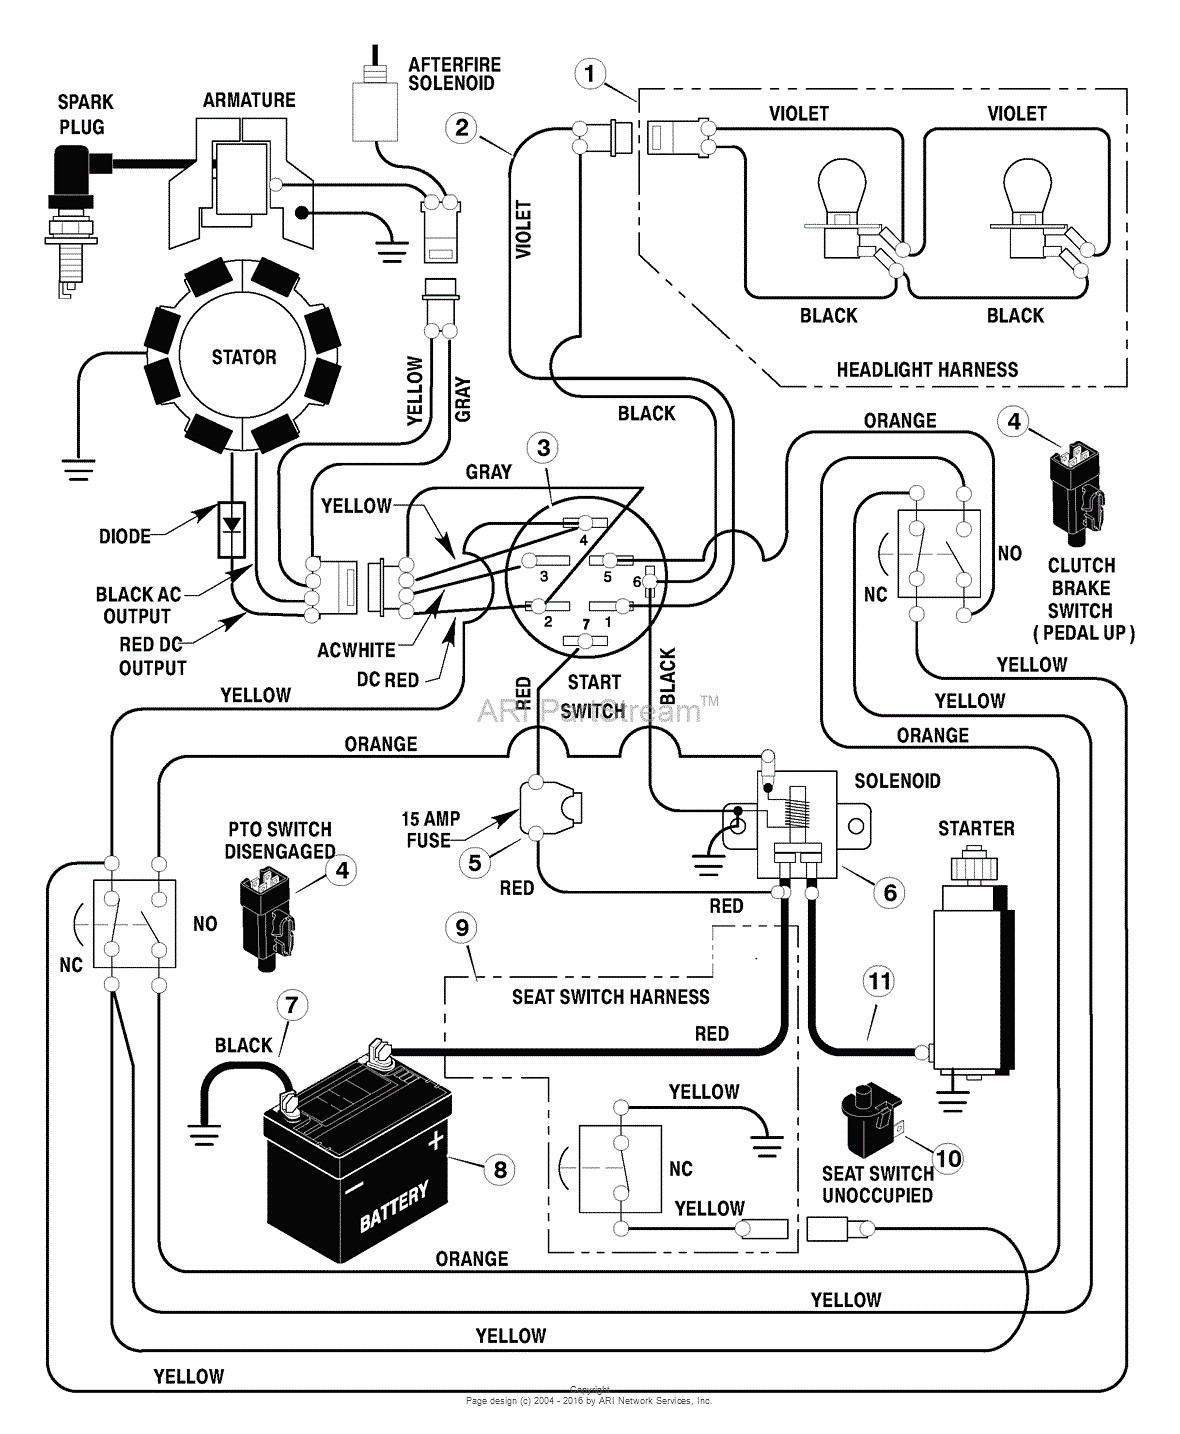 Craftsman Riding Lawn Mower Lt1000 Wiring Diagram | Free ...